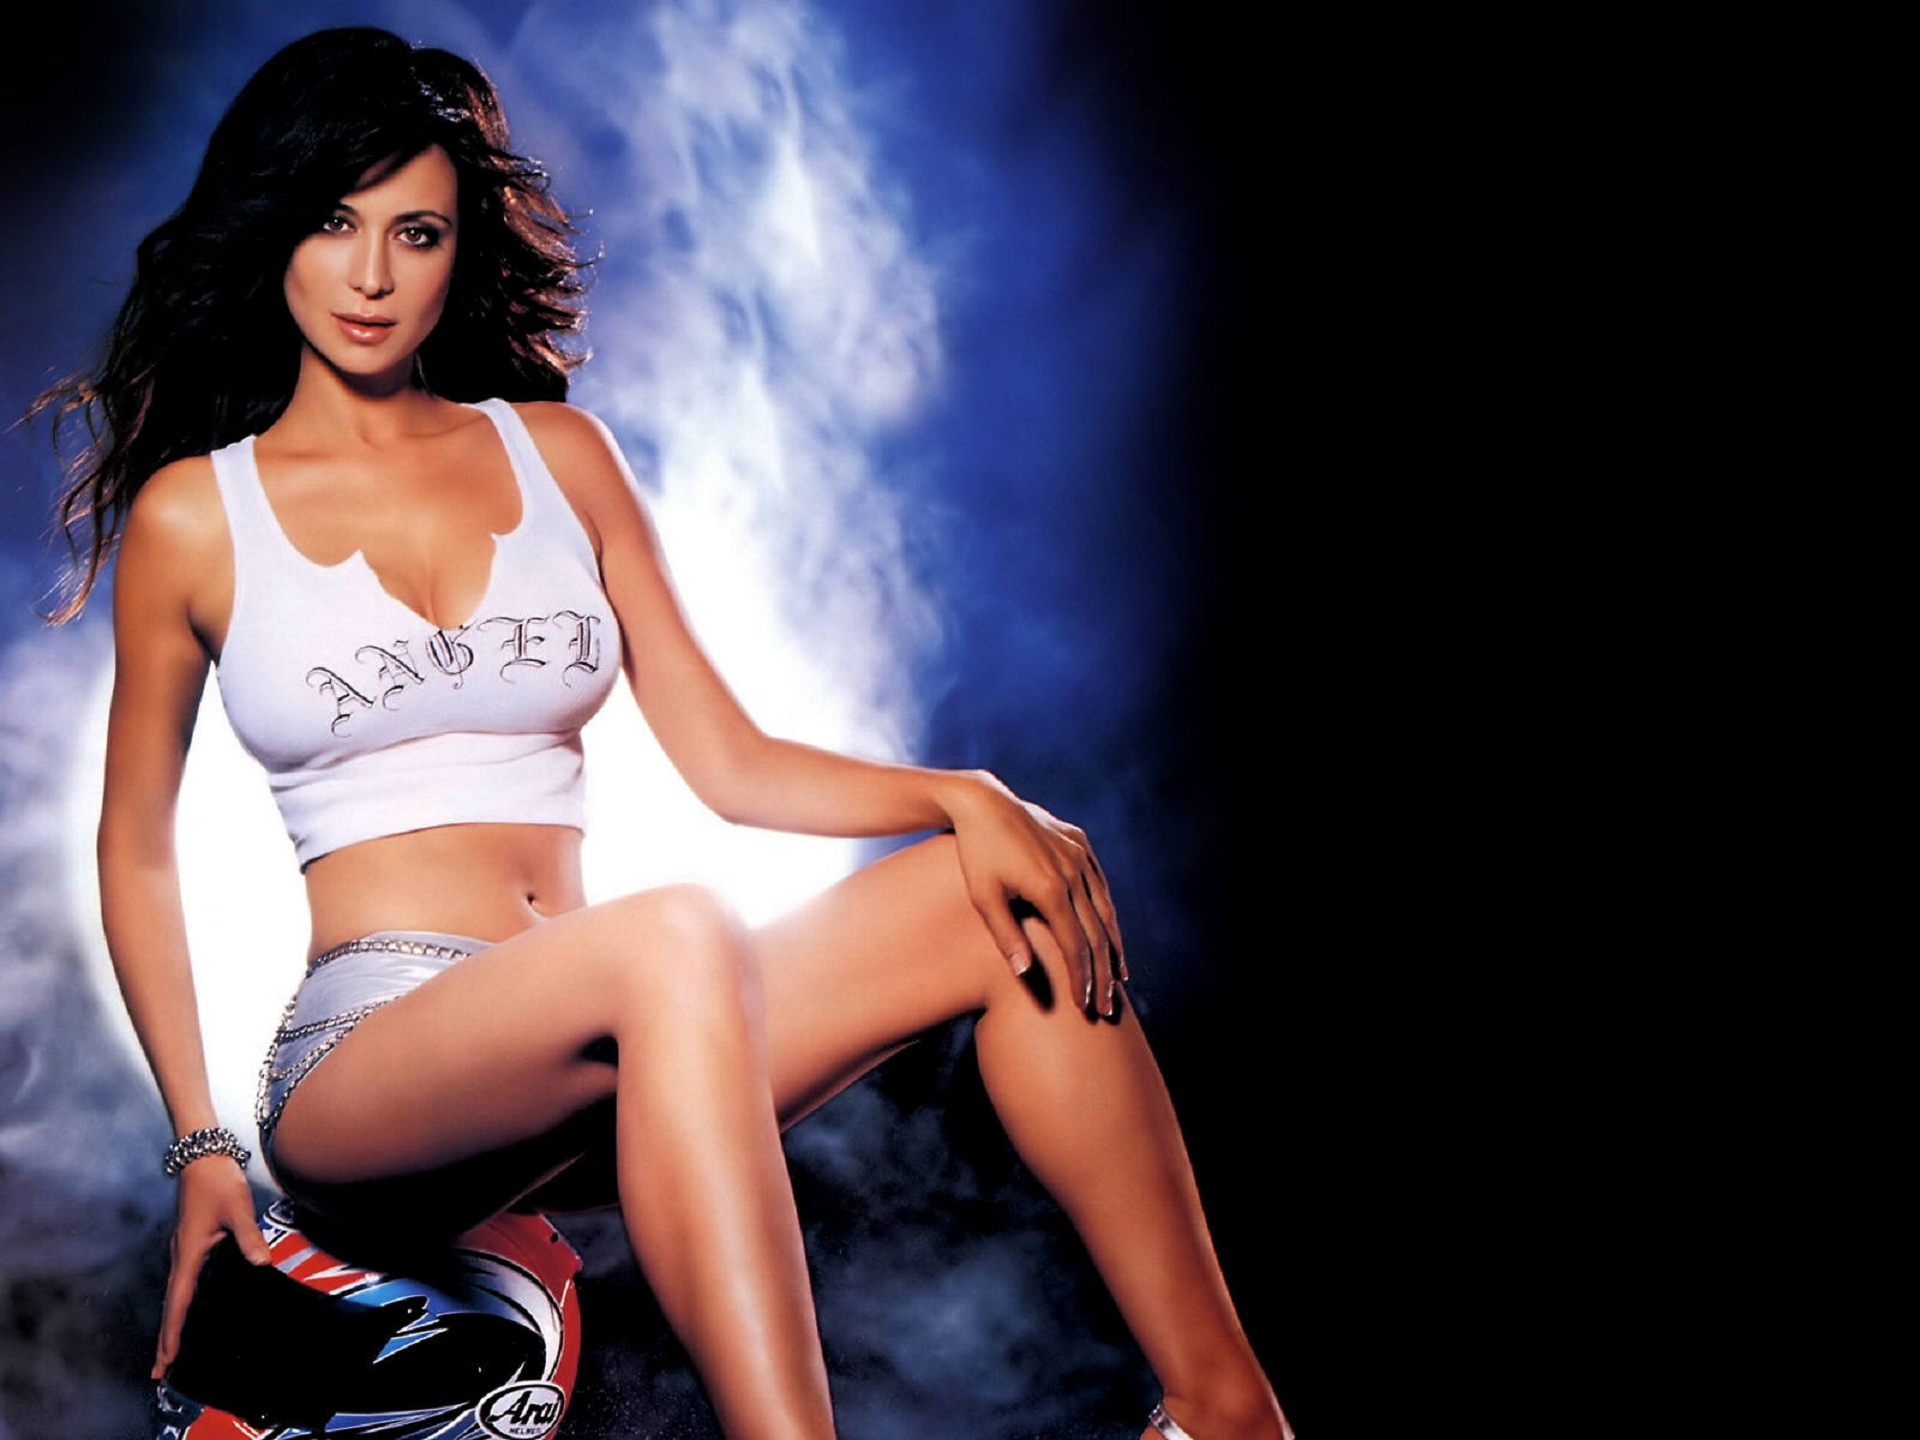 1920x1440 - Catherine Bell Wallpapers 1